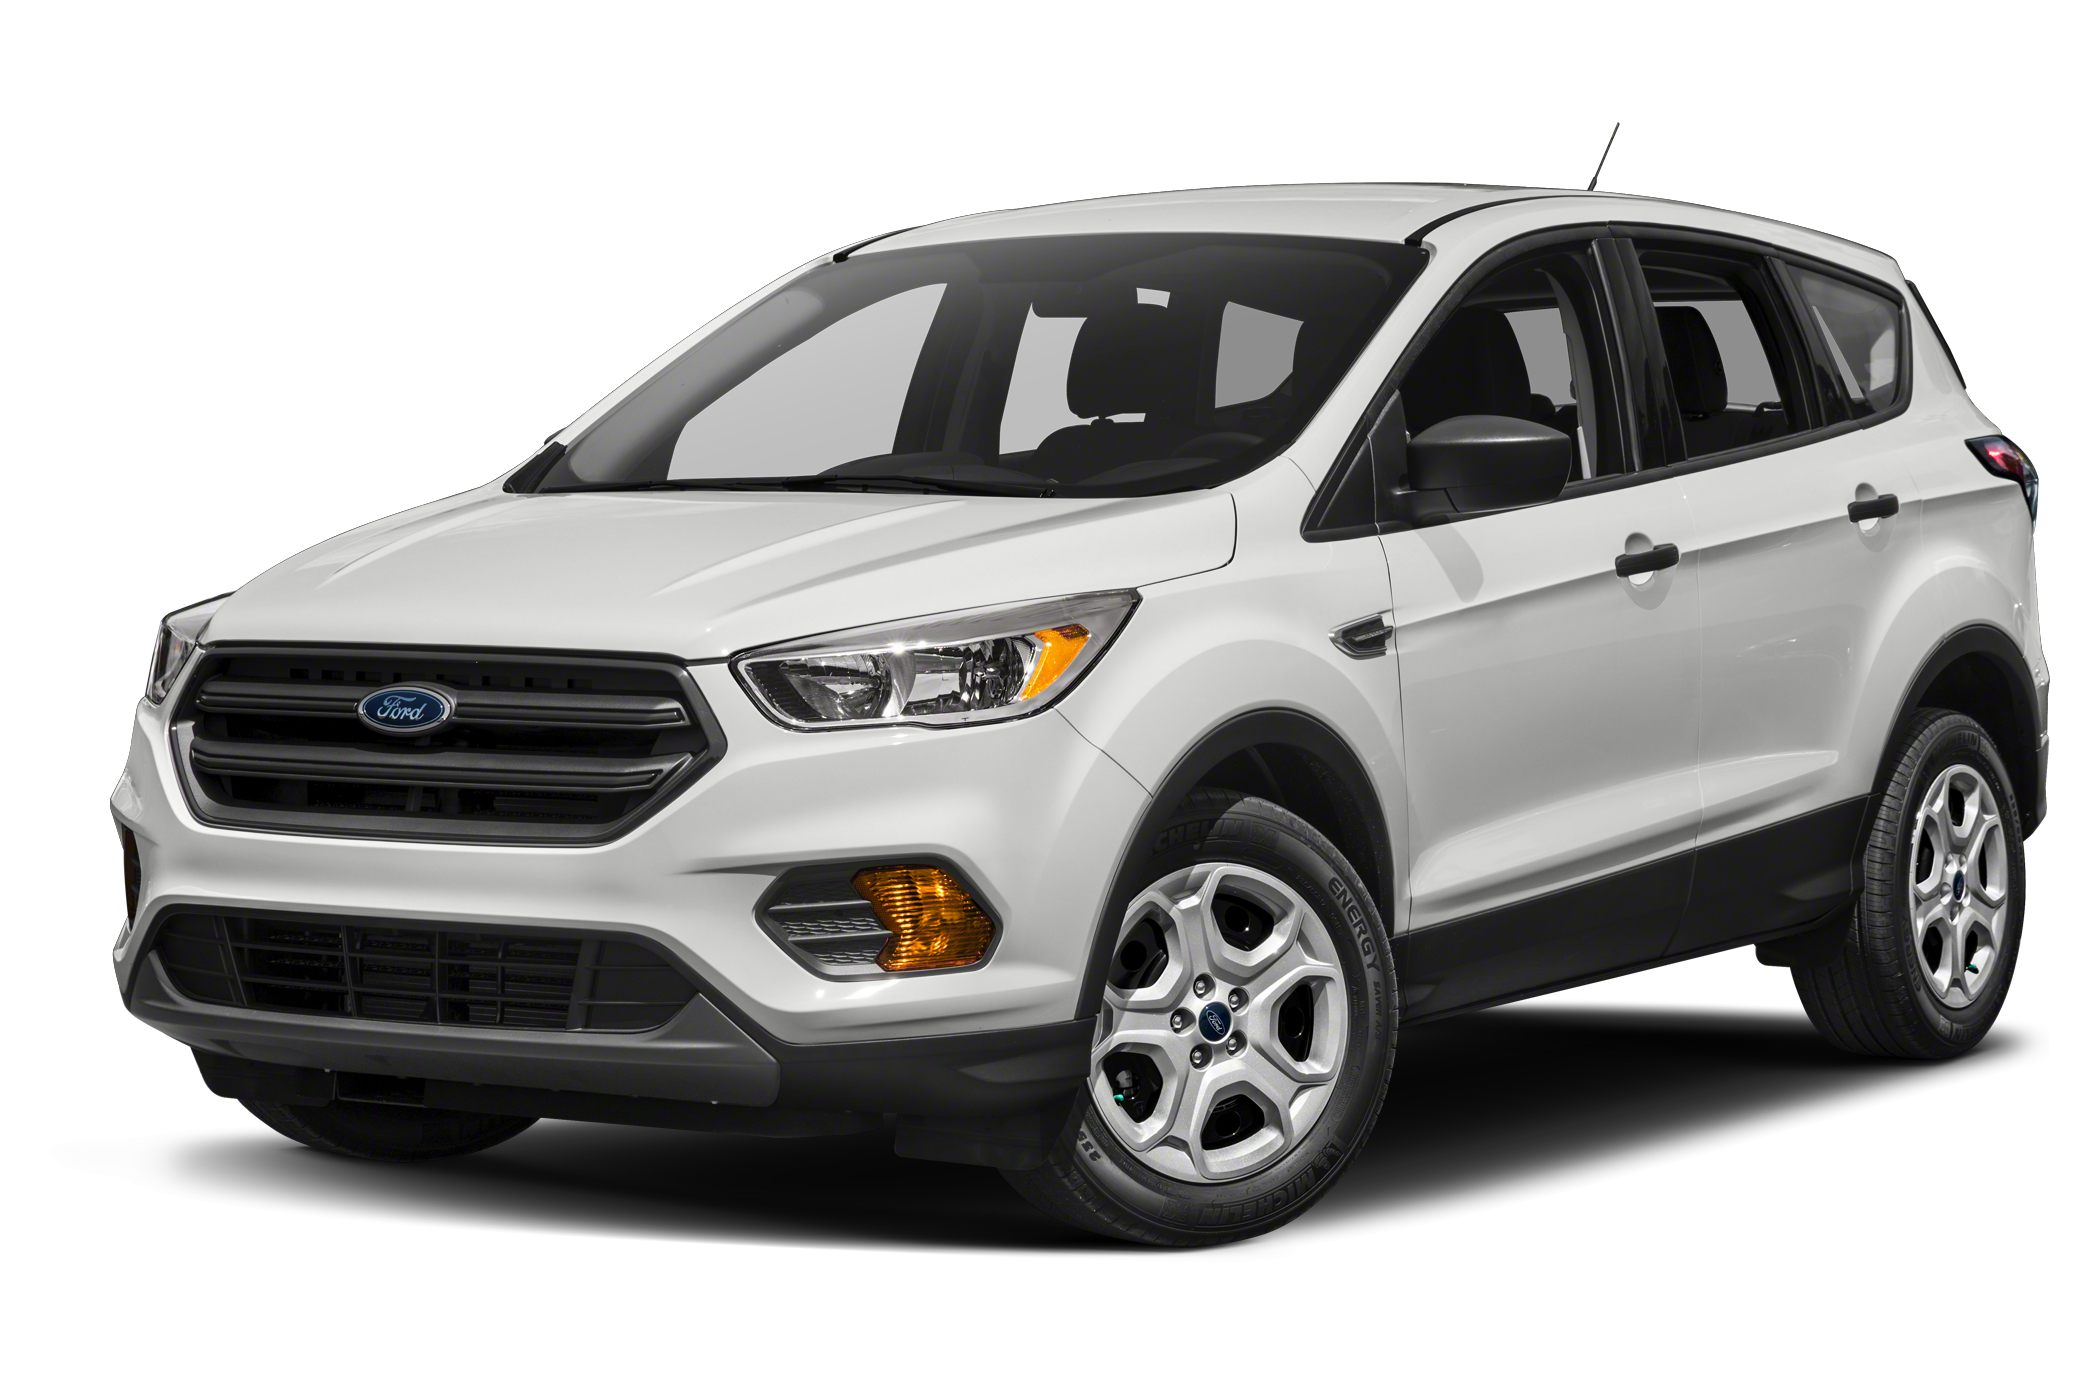 2017 Ford Escape SE White Gold Metallic 2017 Ford Escape SE 4WD 6-Speed Automatic EcoBoost 20L I4